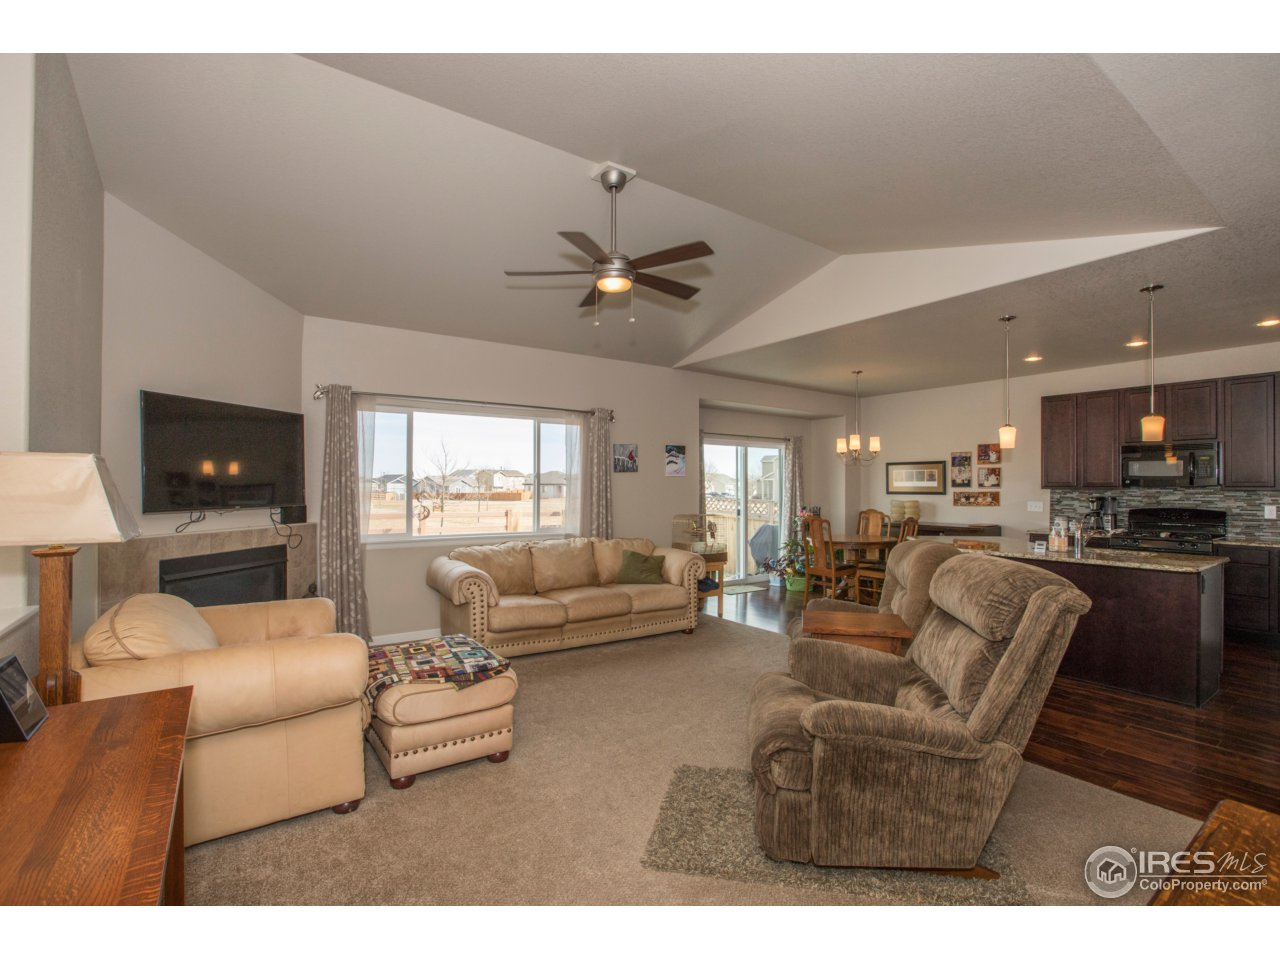 This is a really light, bright & open floor plan